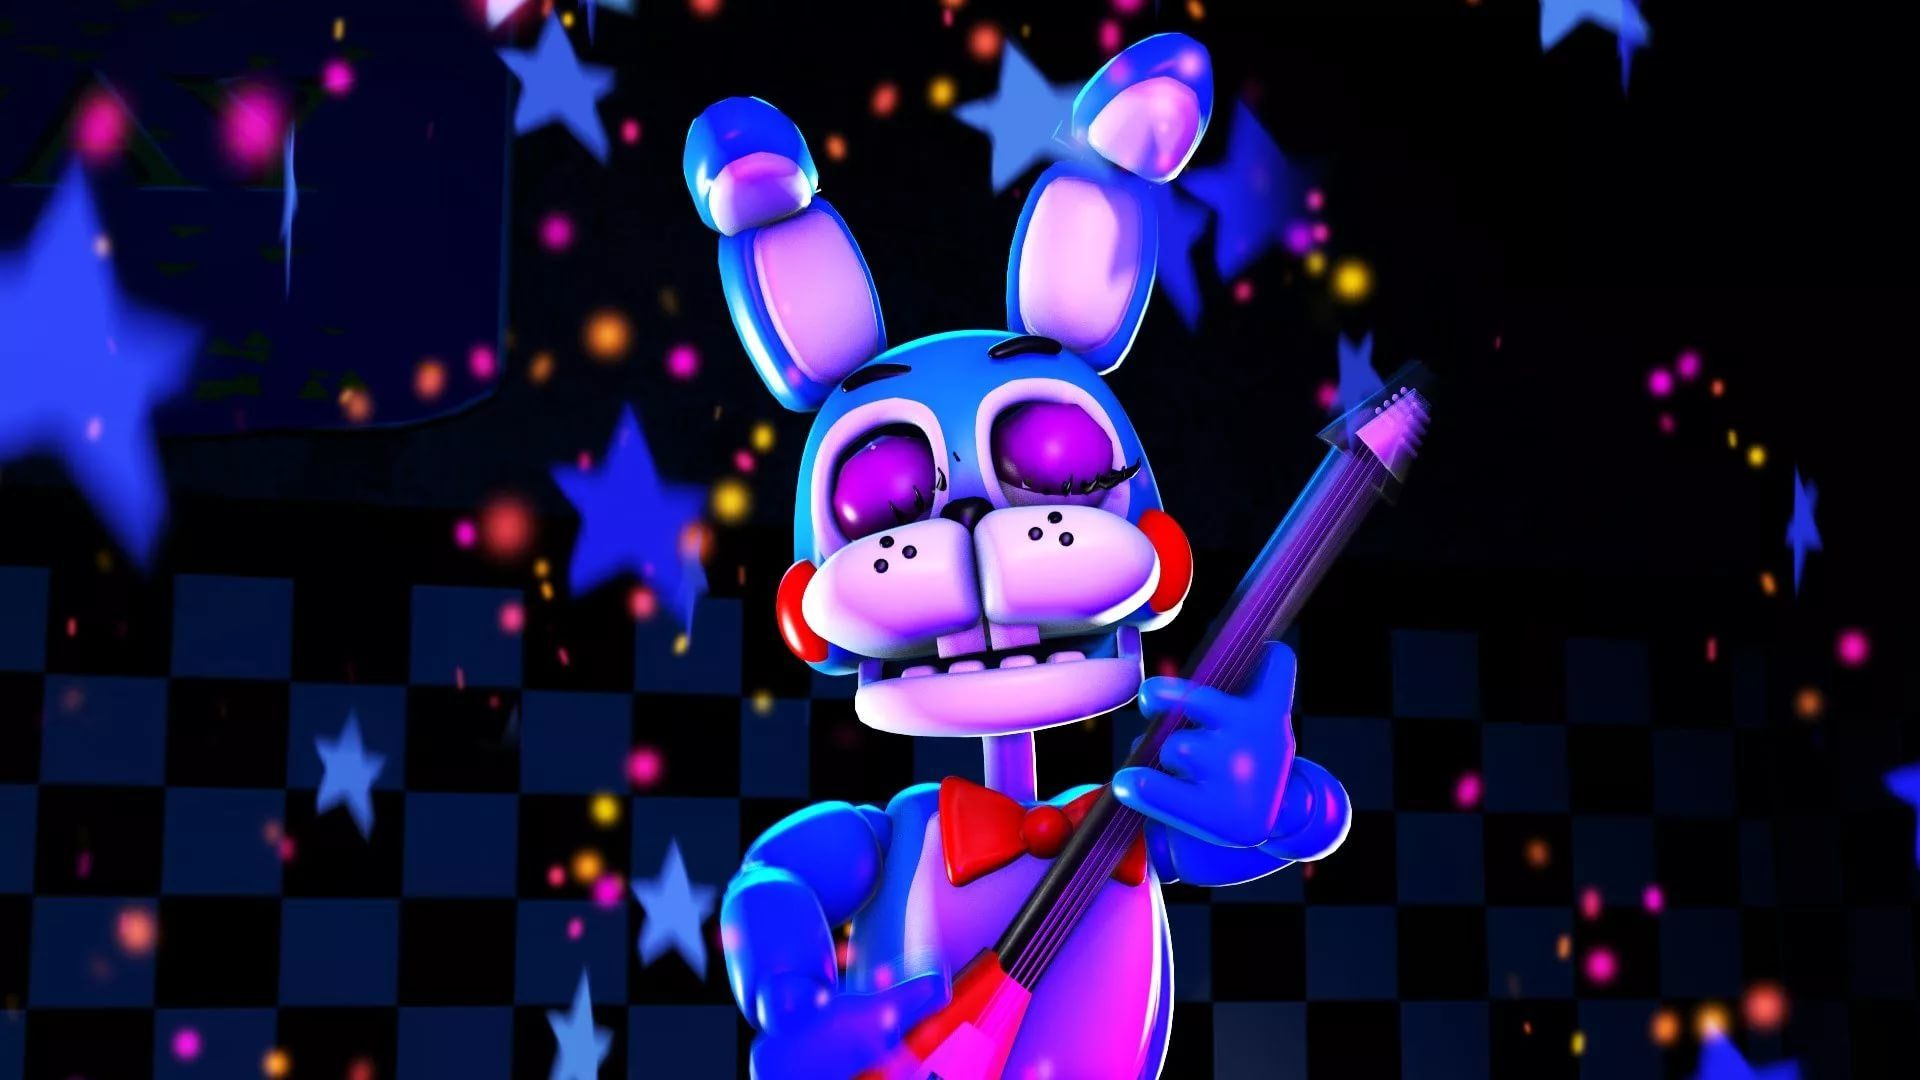 FNAF Bonnie download free wallpapers for pc in hd